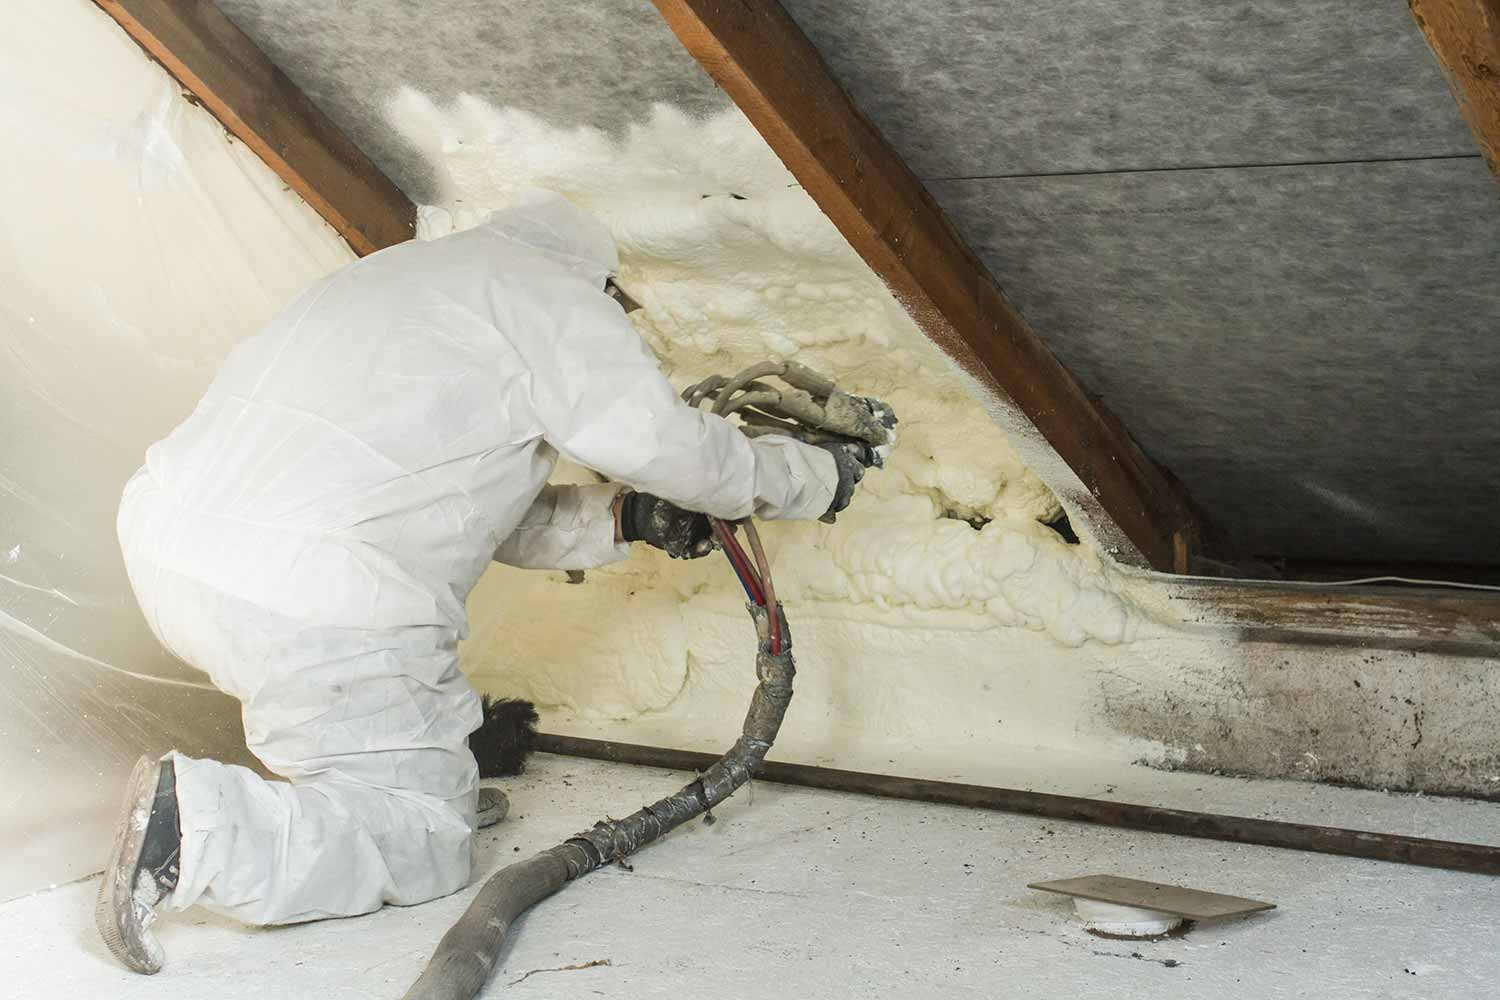 Man Is Spraying With Liquid Insulating Foam In A Home In Lethbridge, Alberta